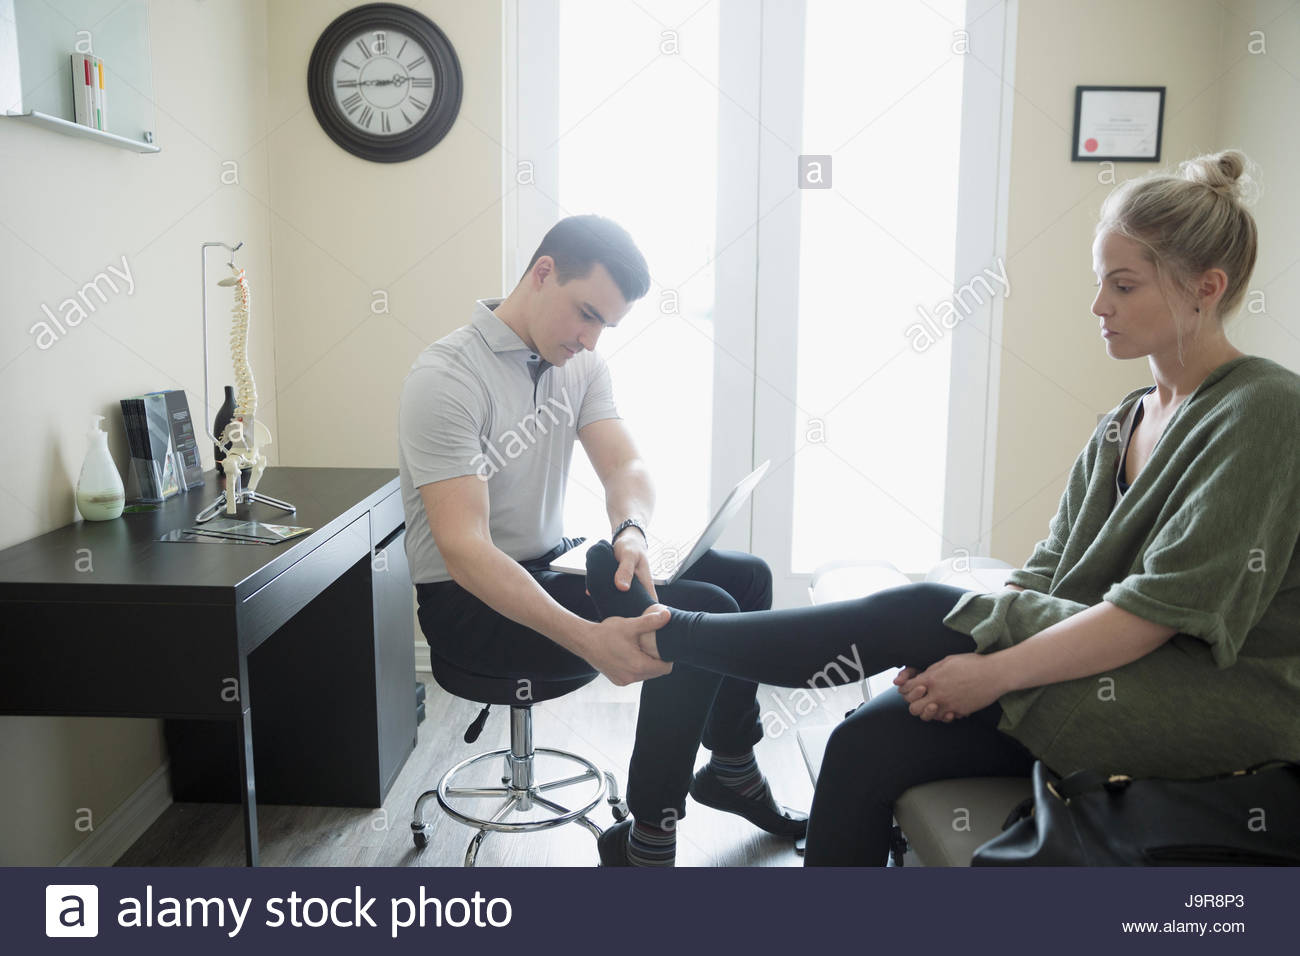 Male physiotherapist examining ankle of woman in clinic examination room - Stock Image